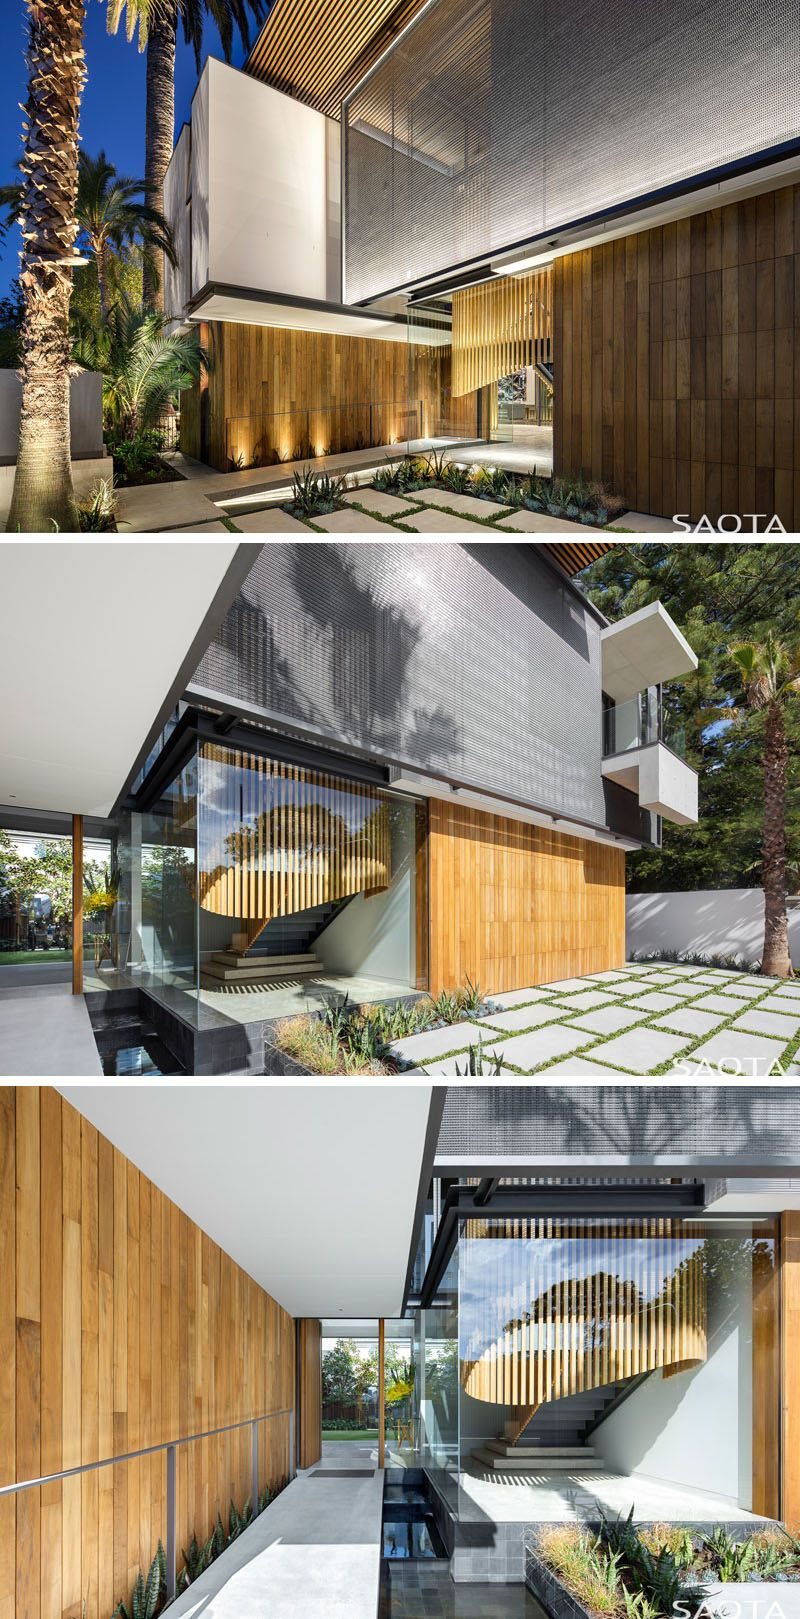 Bay window exterior designs  the double bay house by saota  cool ideas  pinterest  timber